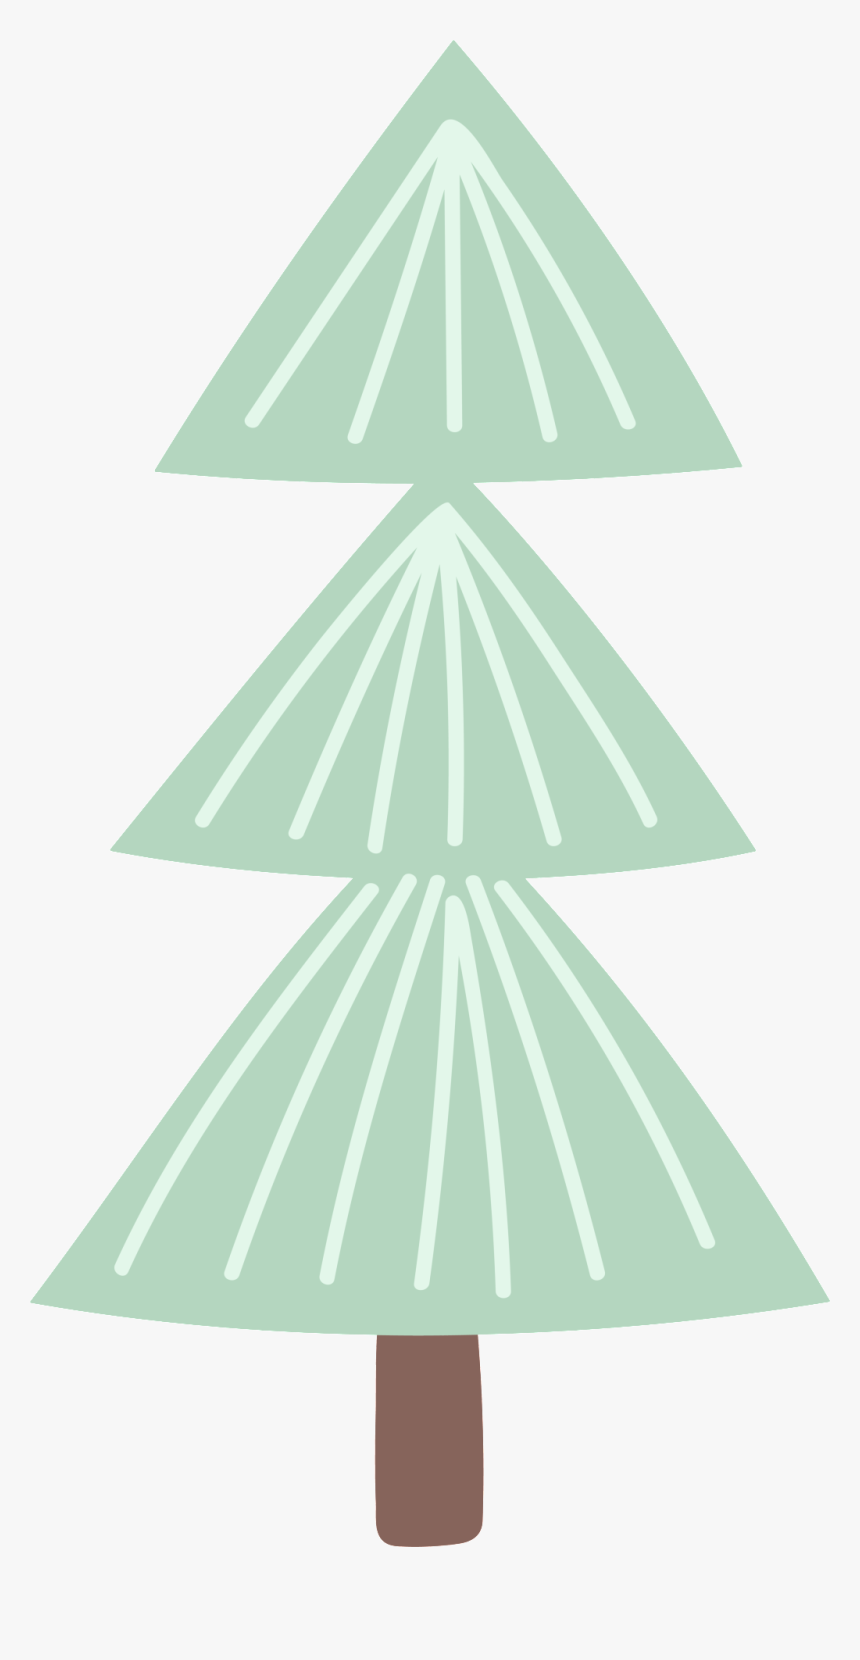 Triangle Branch Christmas Cartoon Transparent - Christmas Tree, HD Png Download, Free Download